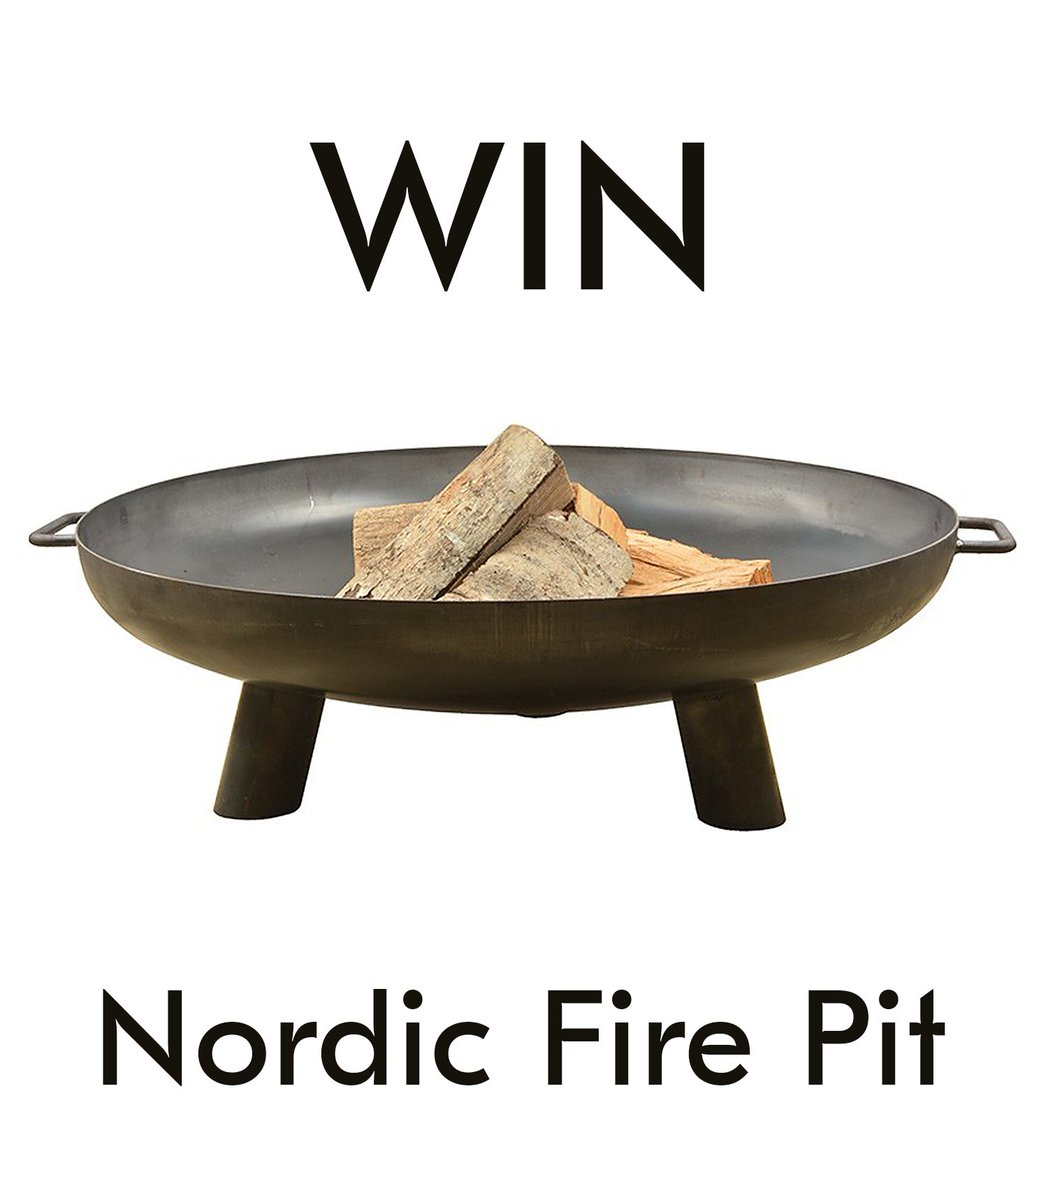 Make the most of the #bankholiday &amp; RT this post for a chance to #win a Nordic Fire Pit from @the_farthing  http:// bit.ly/2x0g6P6  &nbsp;  <br>http://pic.twitter.com/CMK9rpqSz9